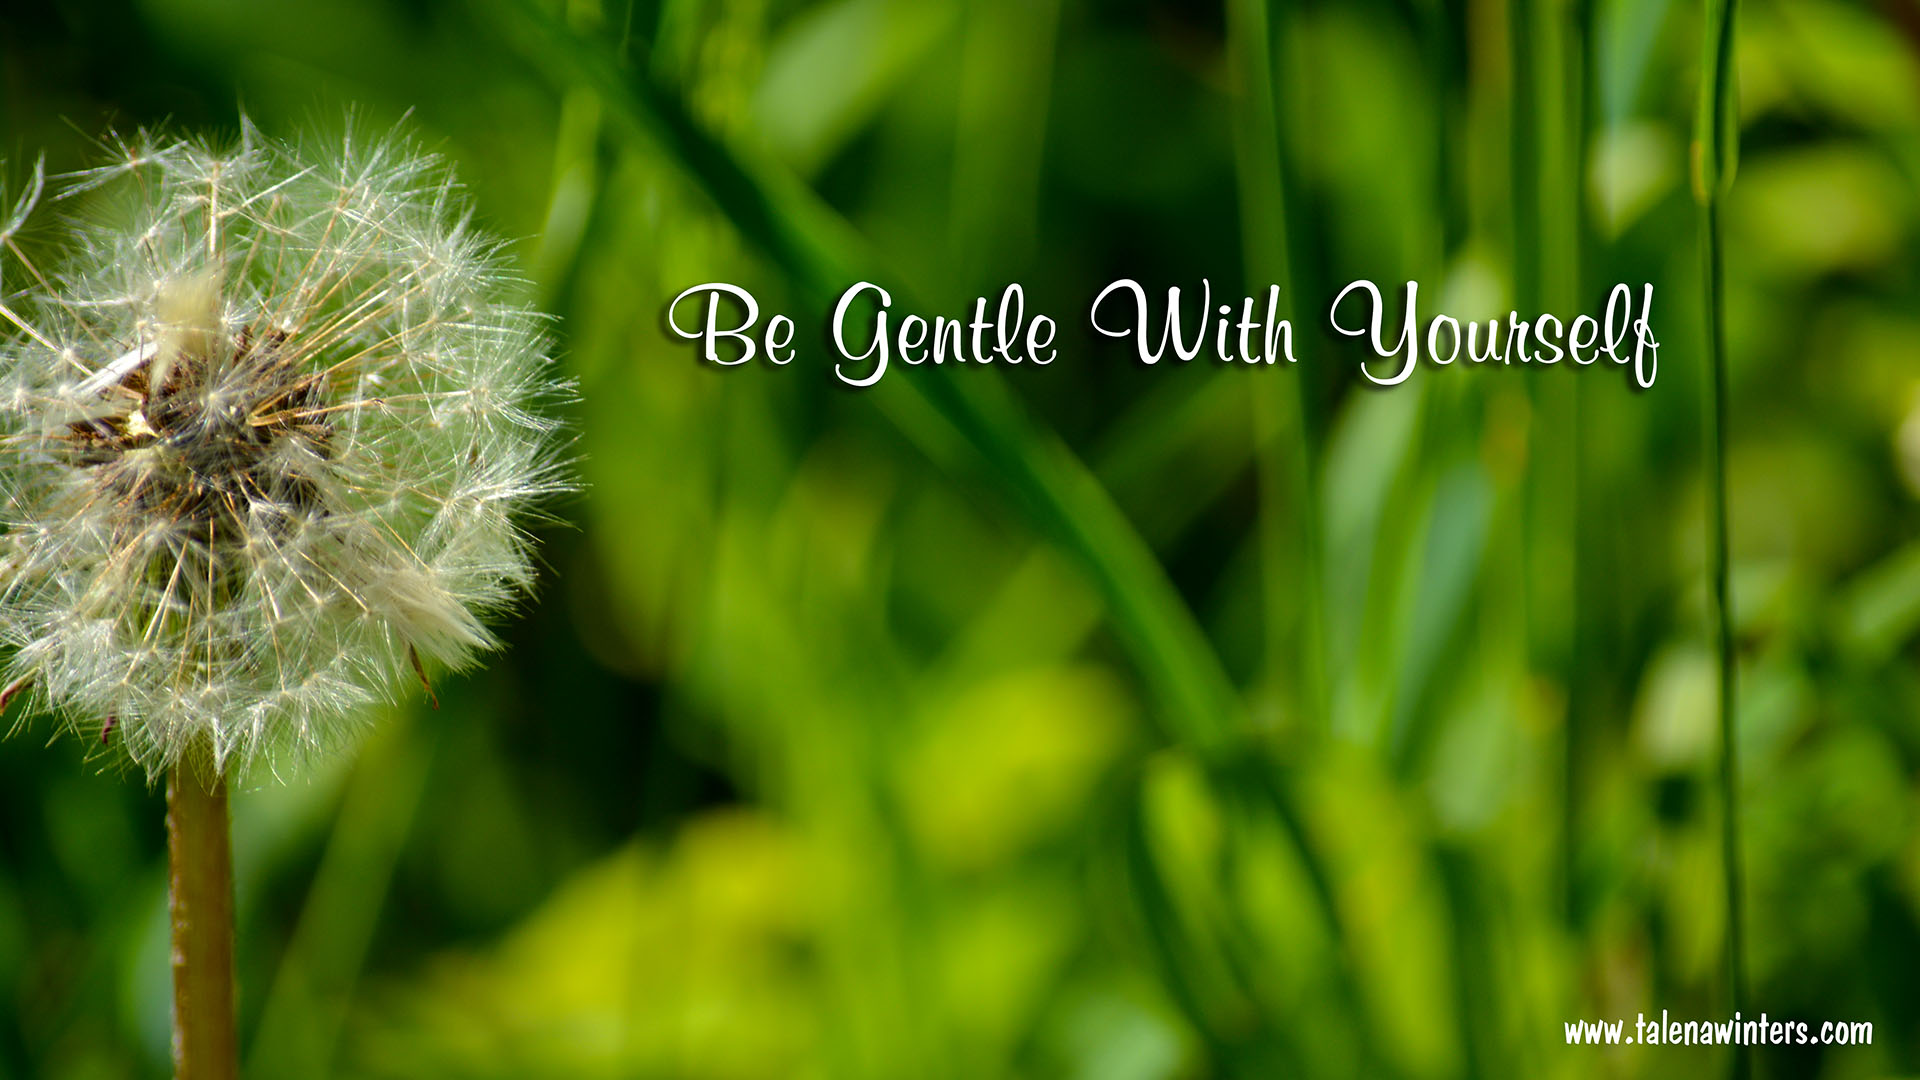 """Be Gentle With Yourself"" desktop wallpaper, 1920x1080 resolution. Find more free inspirational desktop wallpapers at  www.talenawinters.com/desktop-wallpapers ."